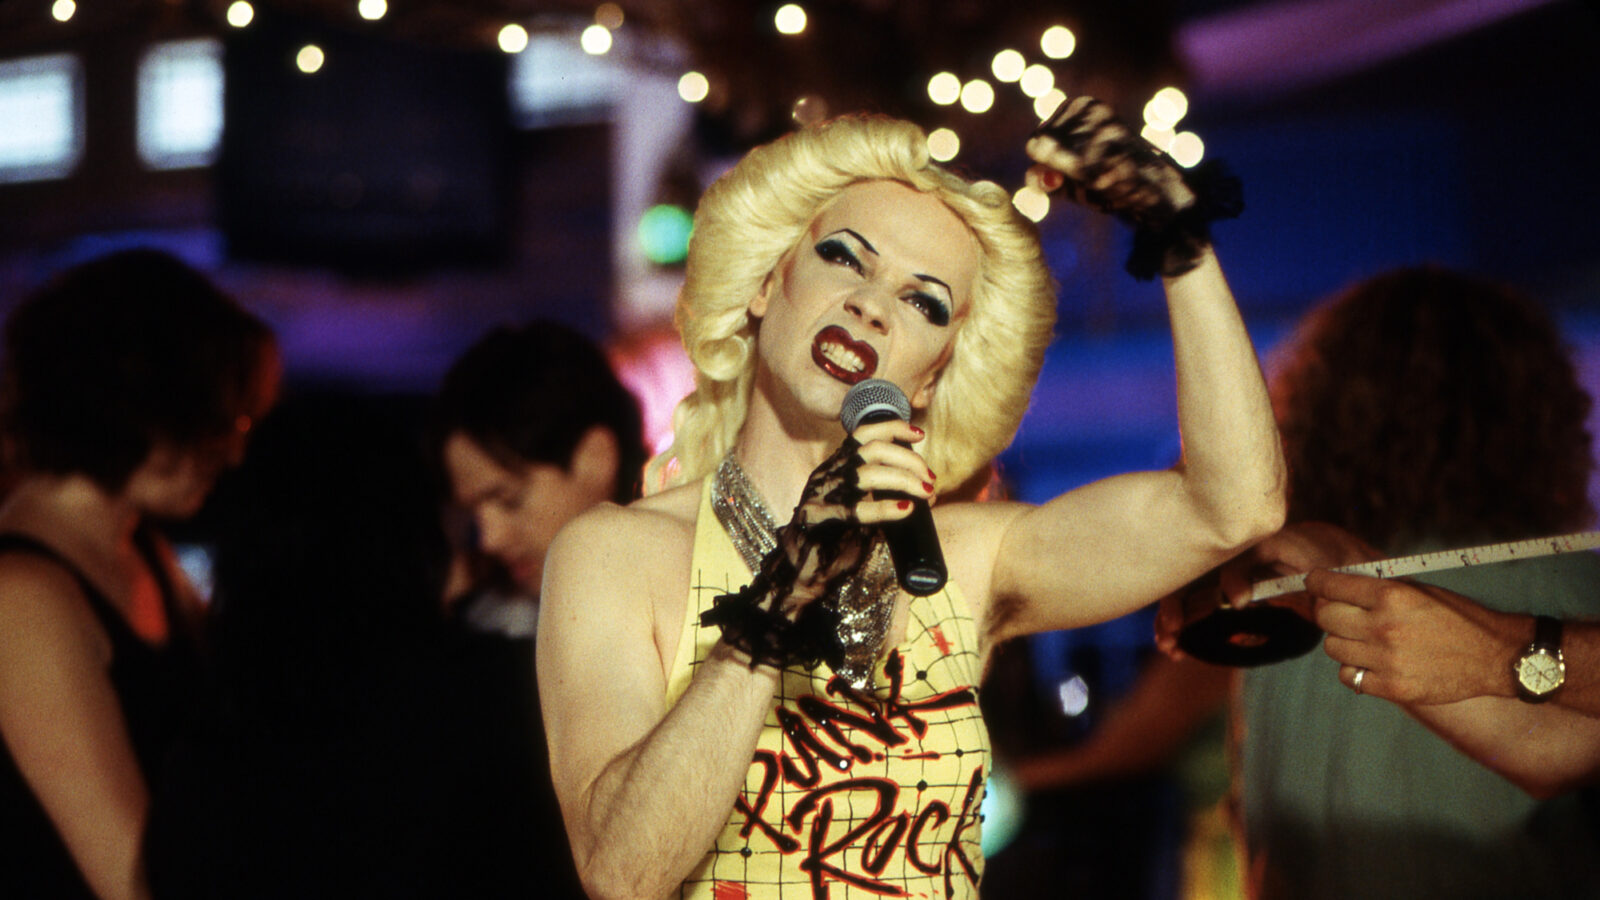 Hedvig and the angry Inch